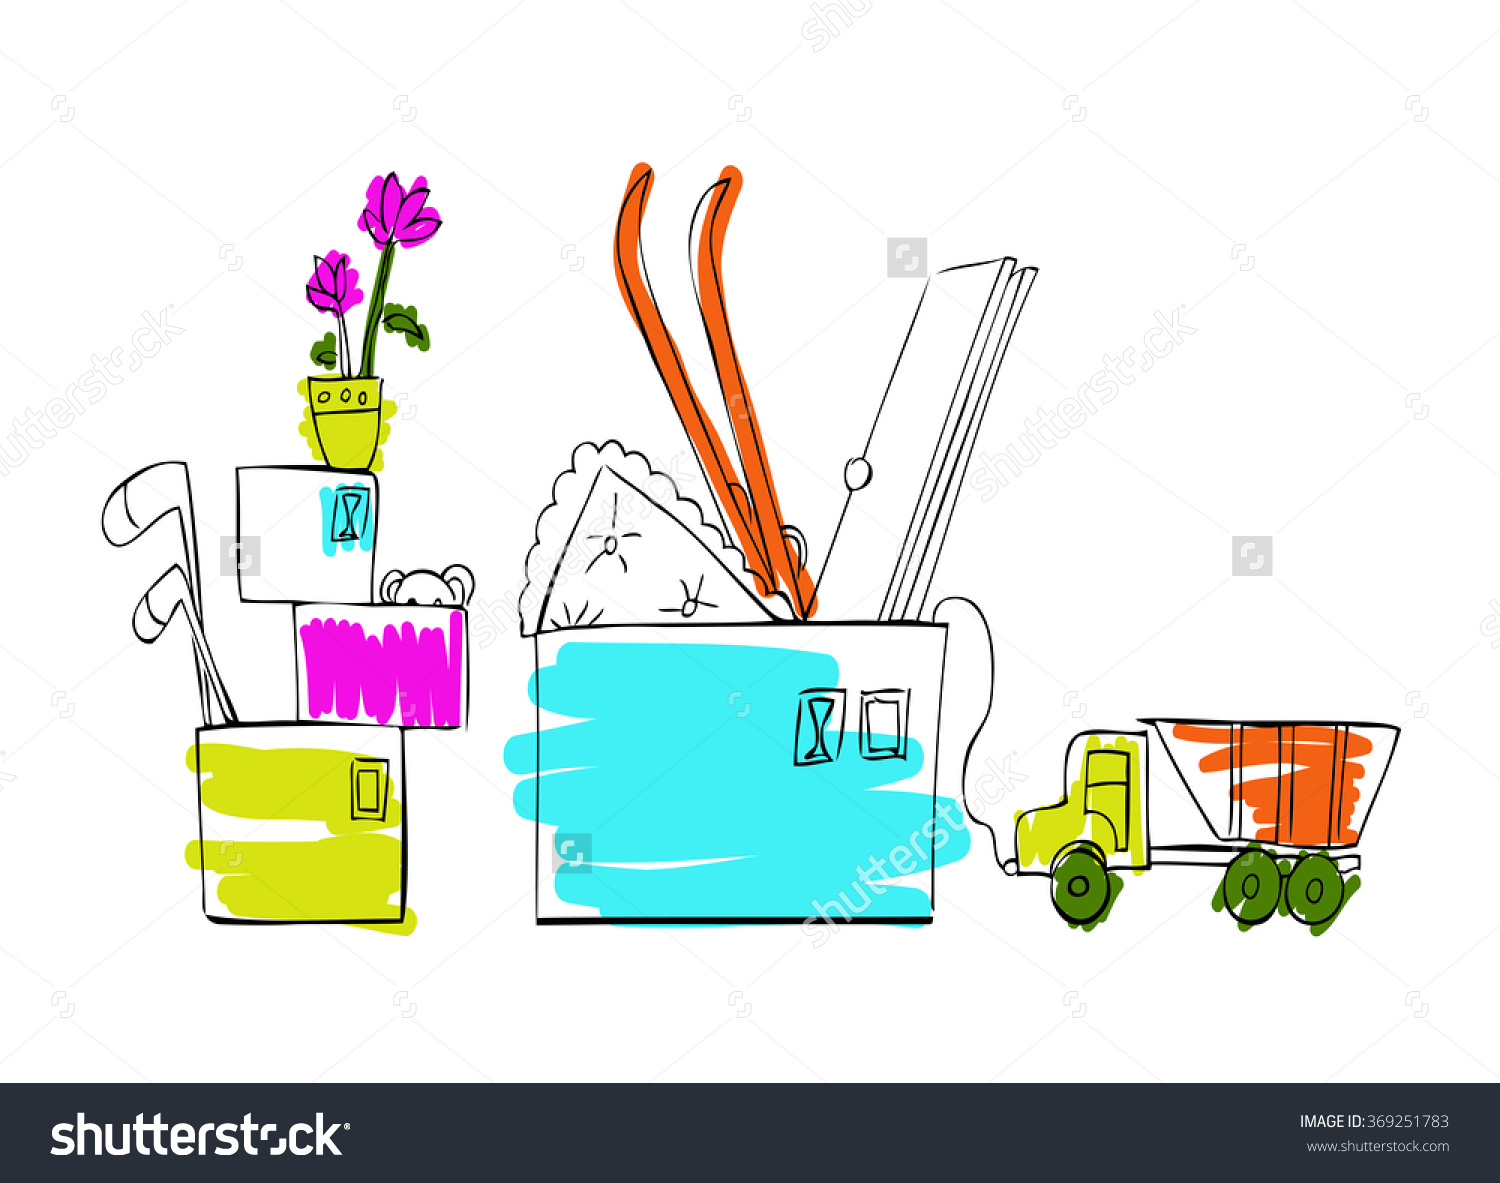 Vector Illustration Collected Things Boxes Stock Vector 369251783.